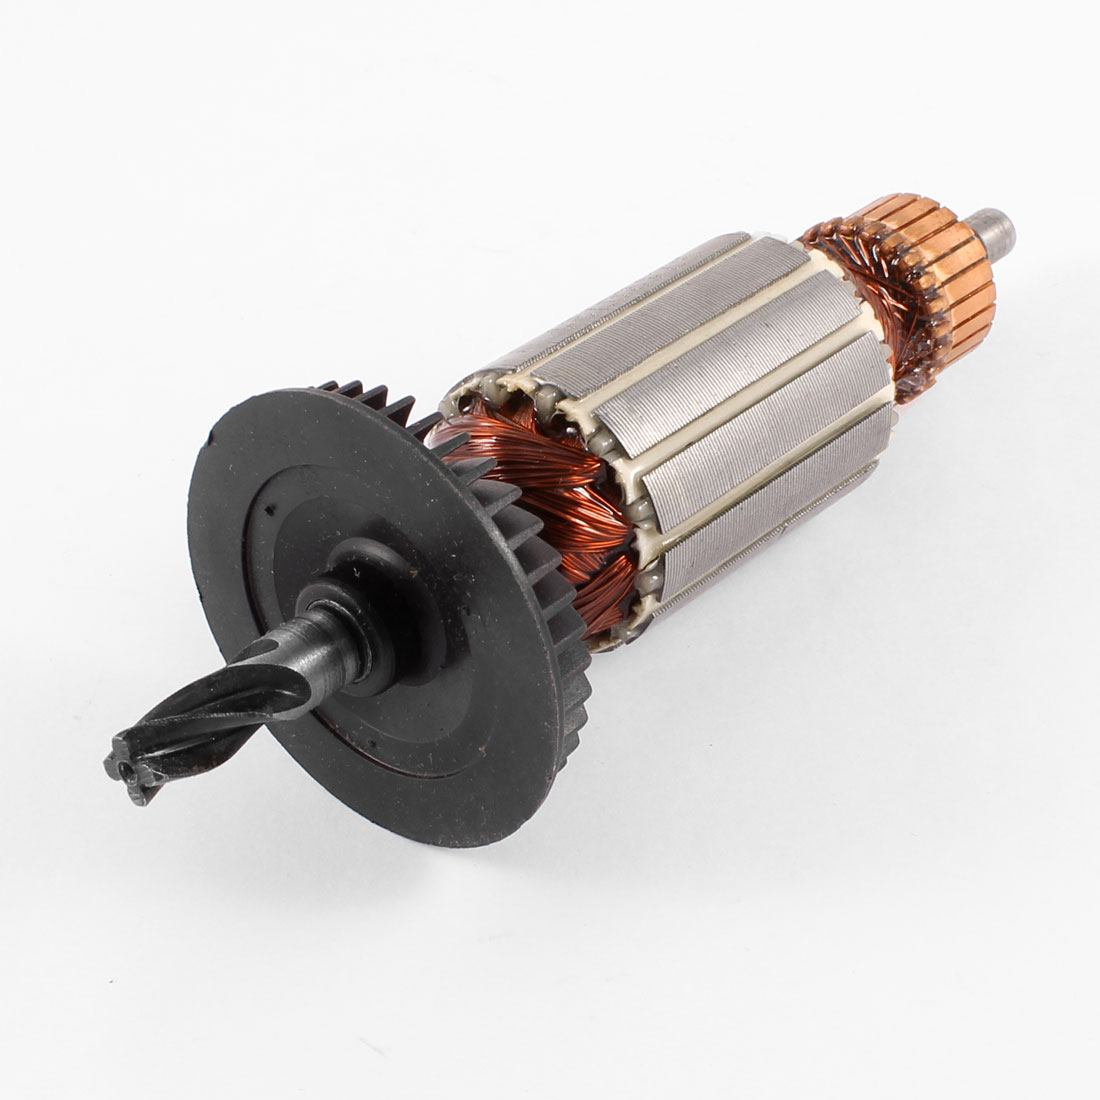 AC220V 4 Teeth Shaft Electric Rotor Armature for Bosch GBH 2-20se